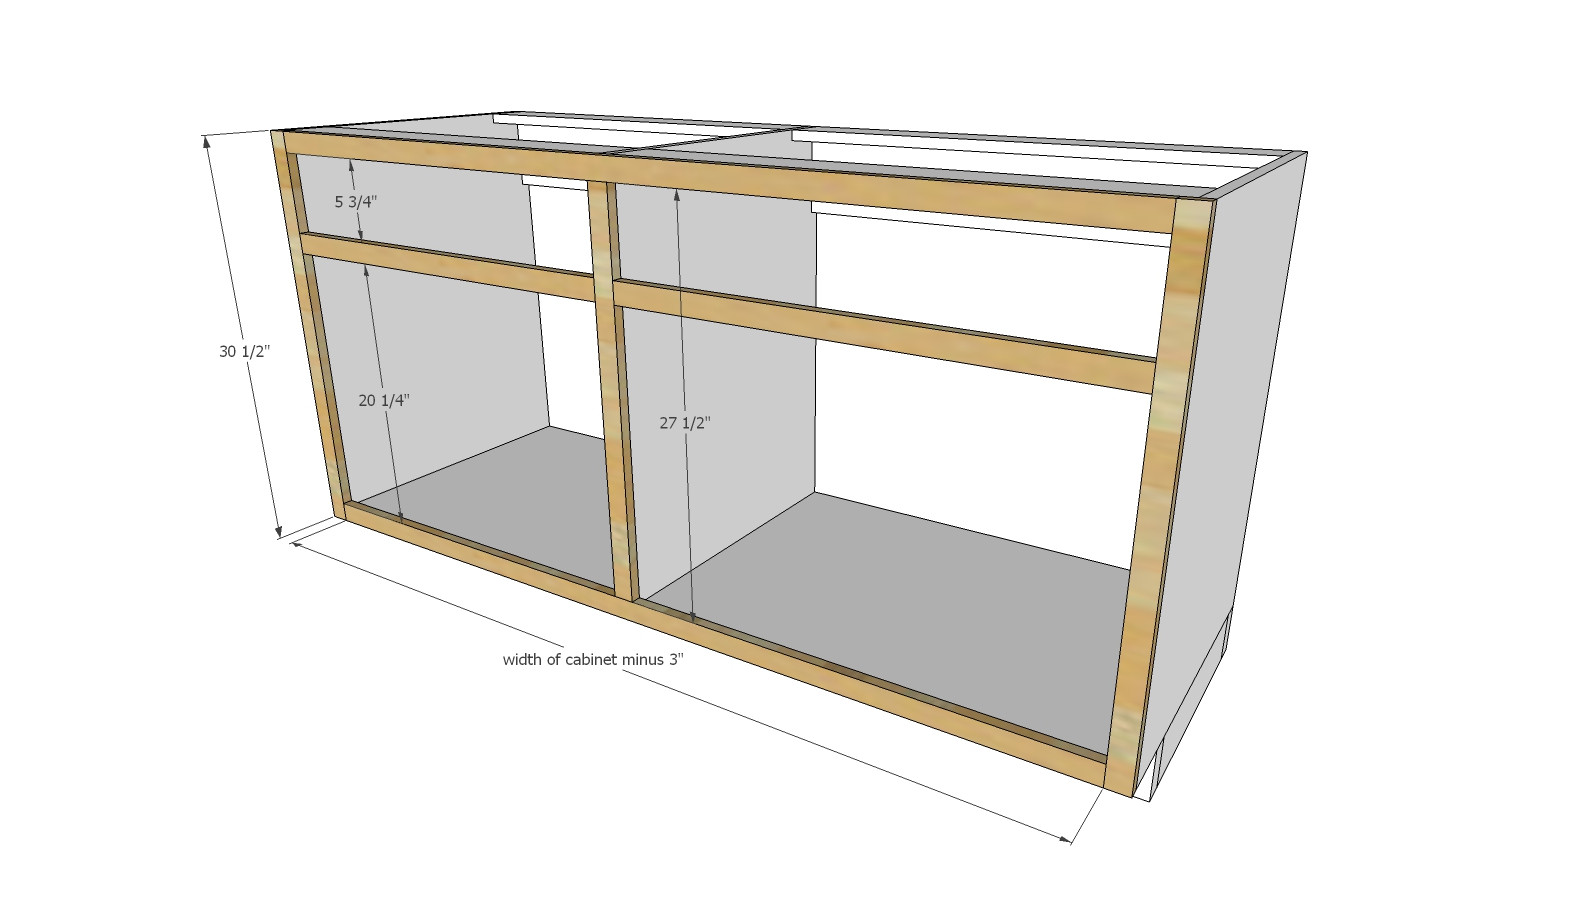 Best ideas about Kitchen Cabinet Plans DIY . Save or Pin Ana White Now.